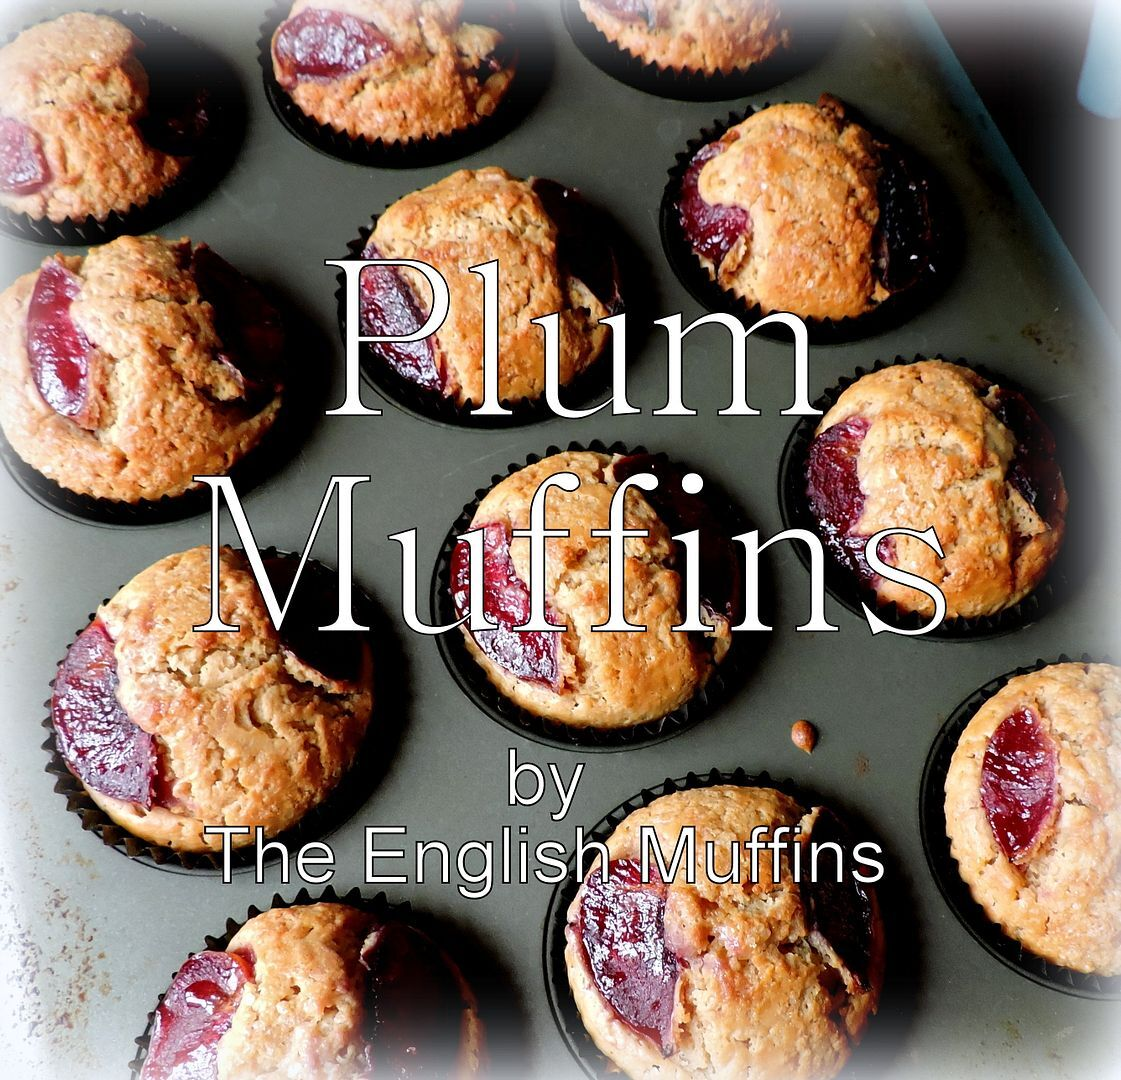 Grow Your Own Cake and Plum Muffins